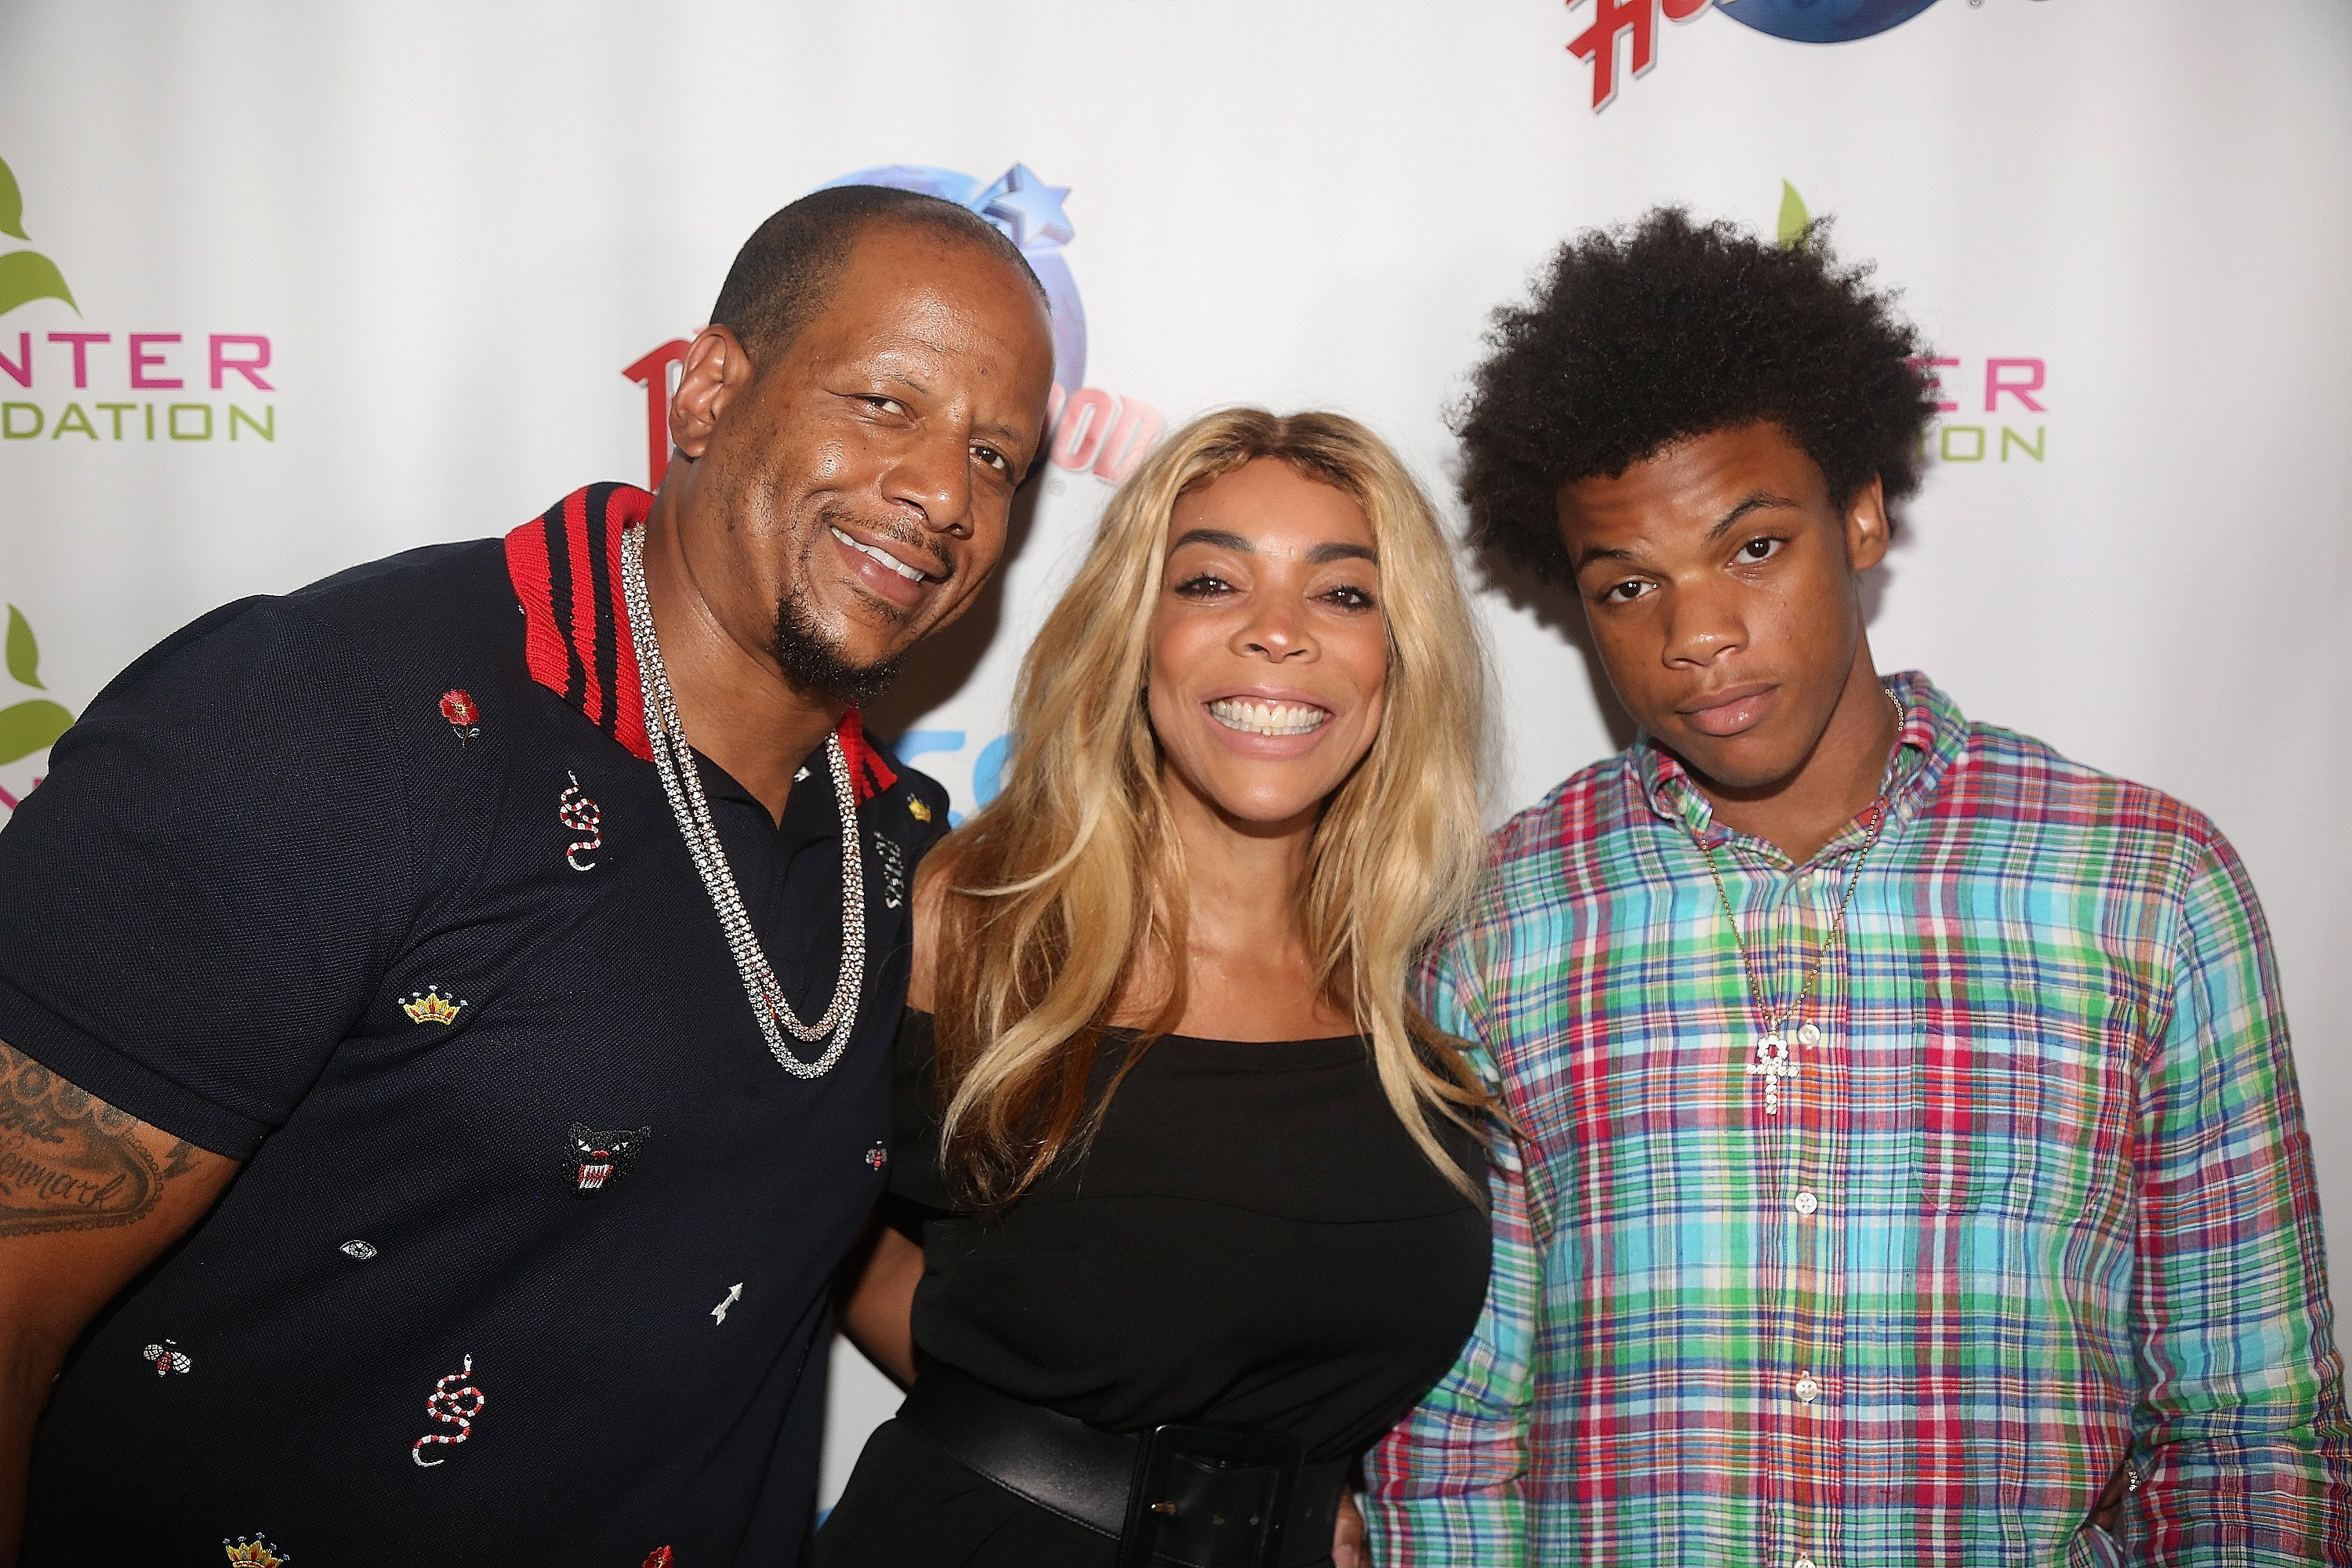 Kevin Hunter, Wendy Williams and their only son and child, Kevin Hunter, Jr. celebrating the couple's Hunter Foundation in July 2017. | Photo: Getty Images